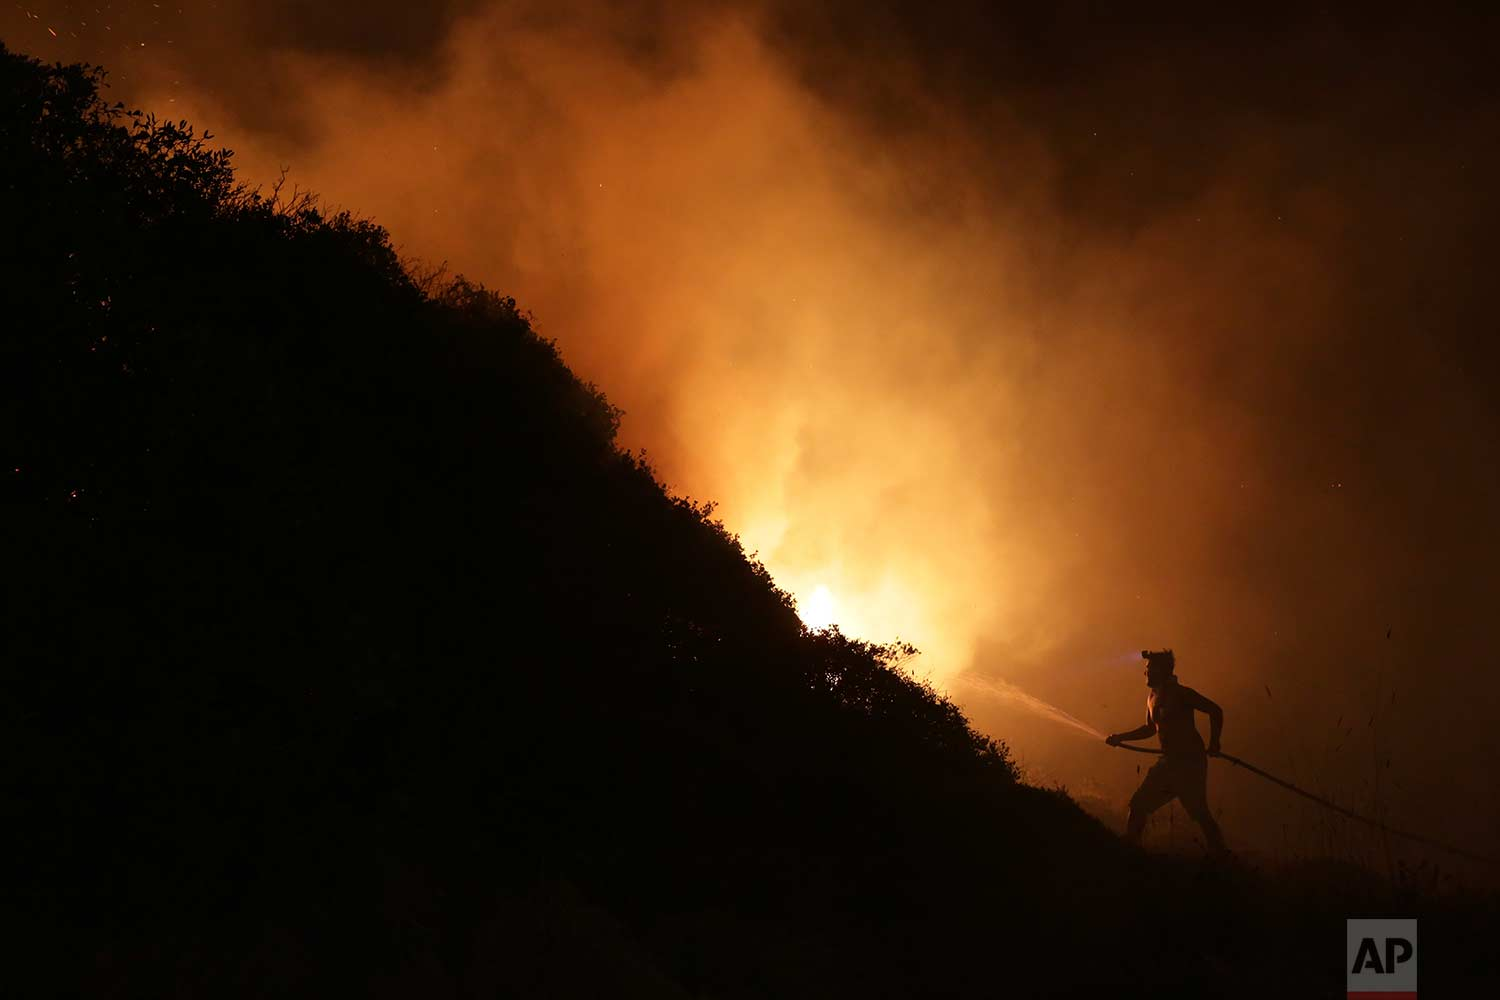 A volunteer uses a water hose to fight a wildfire near houses on the outskirts of Obidos, Portugal, in the early hours of Monday, Oct. 16, 2017. (AP Photo/Armando Franca)